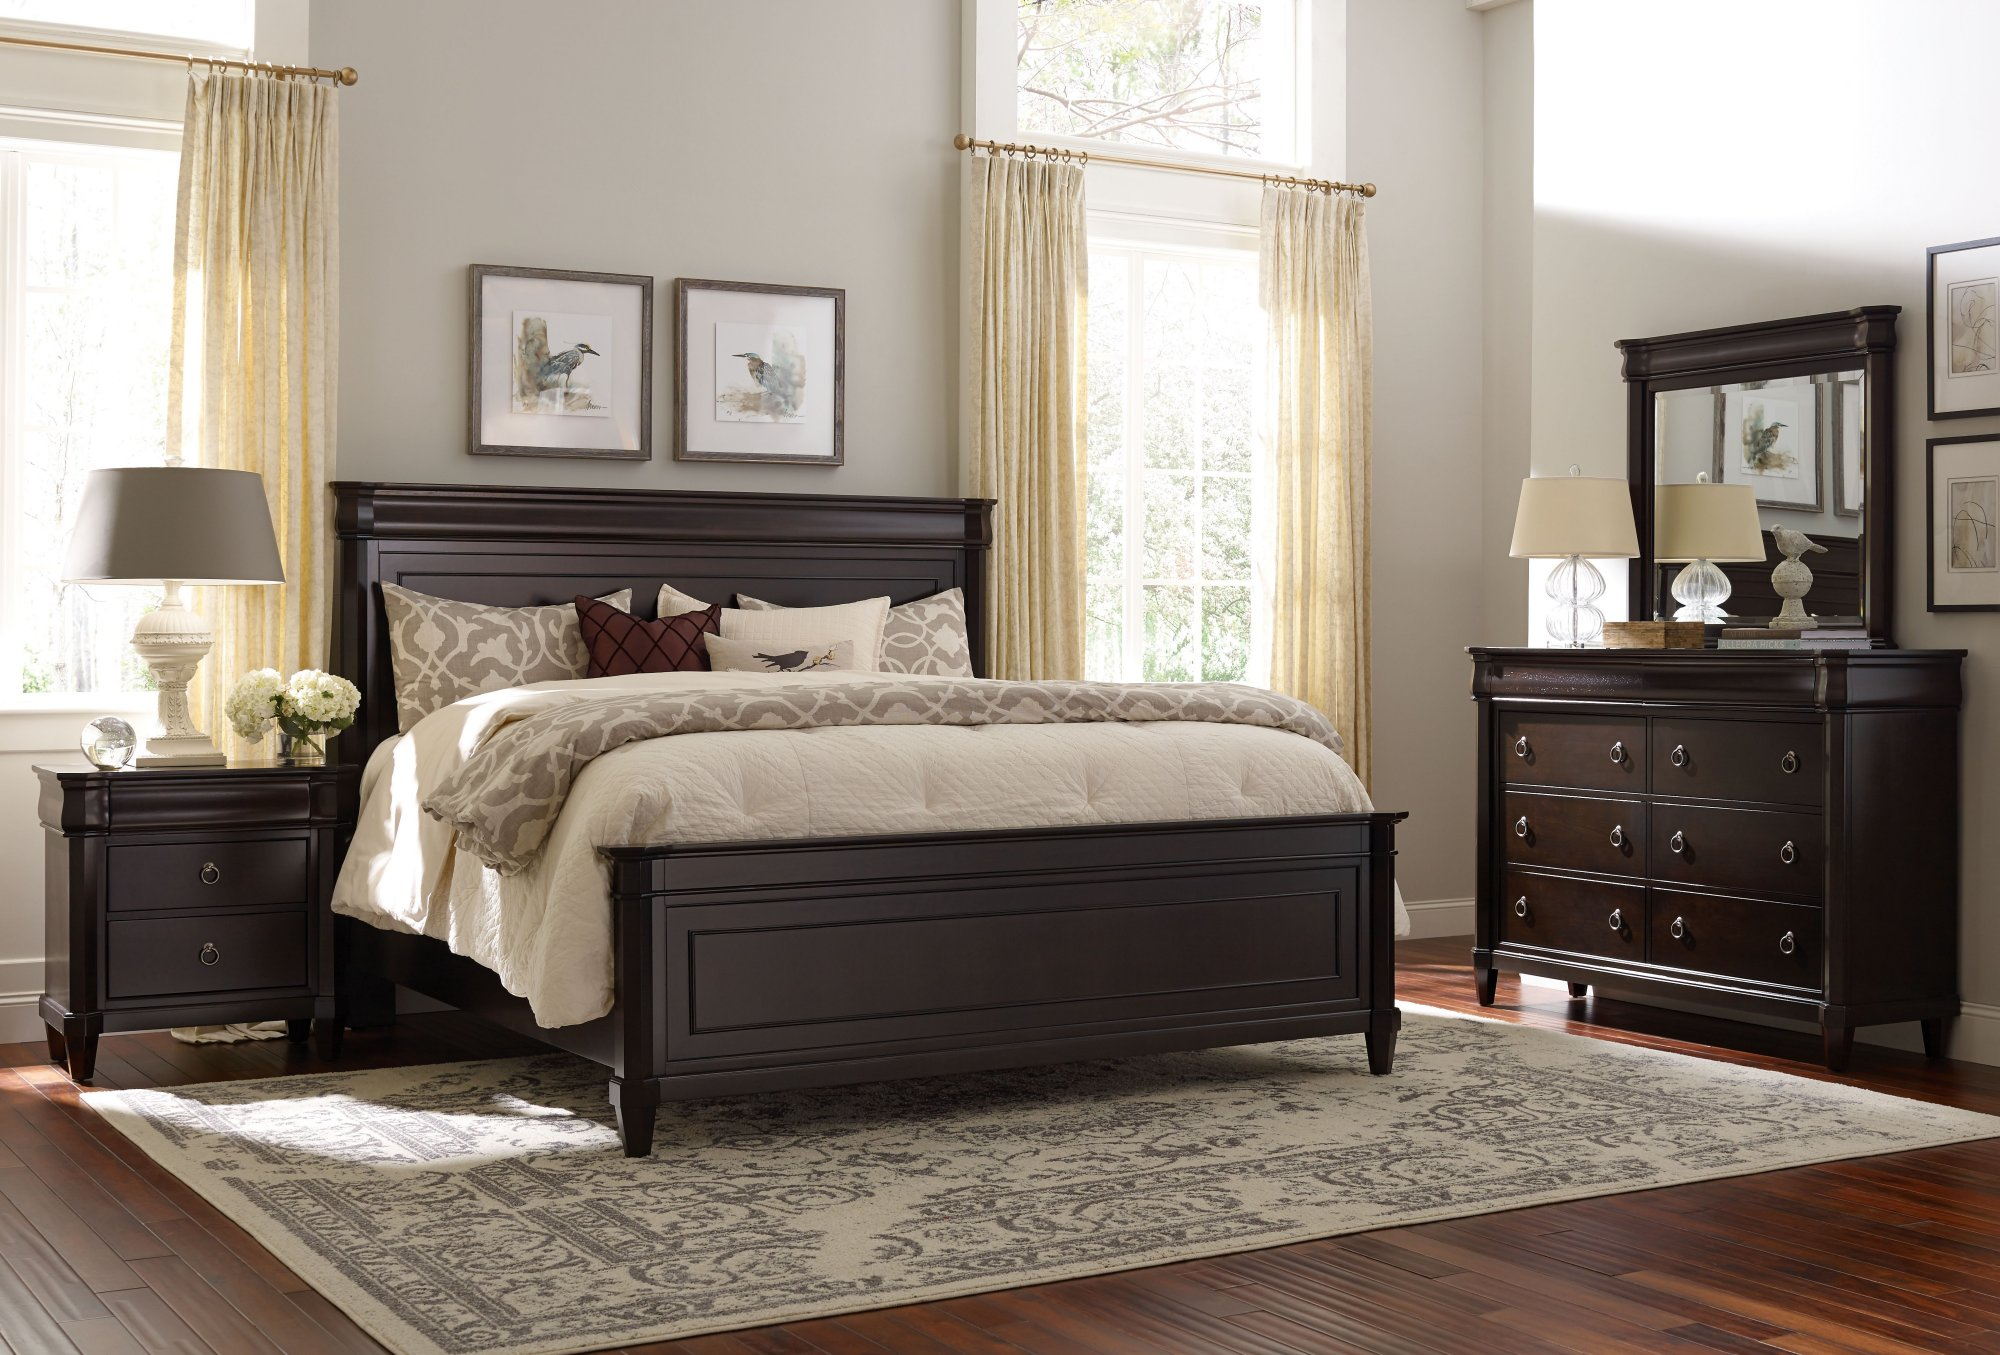 Broyhill Aryell Bedroom Collection